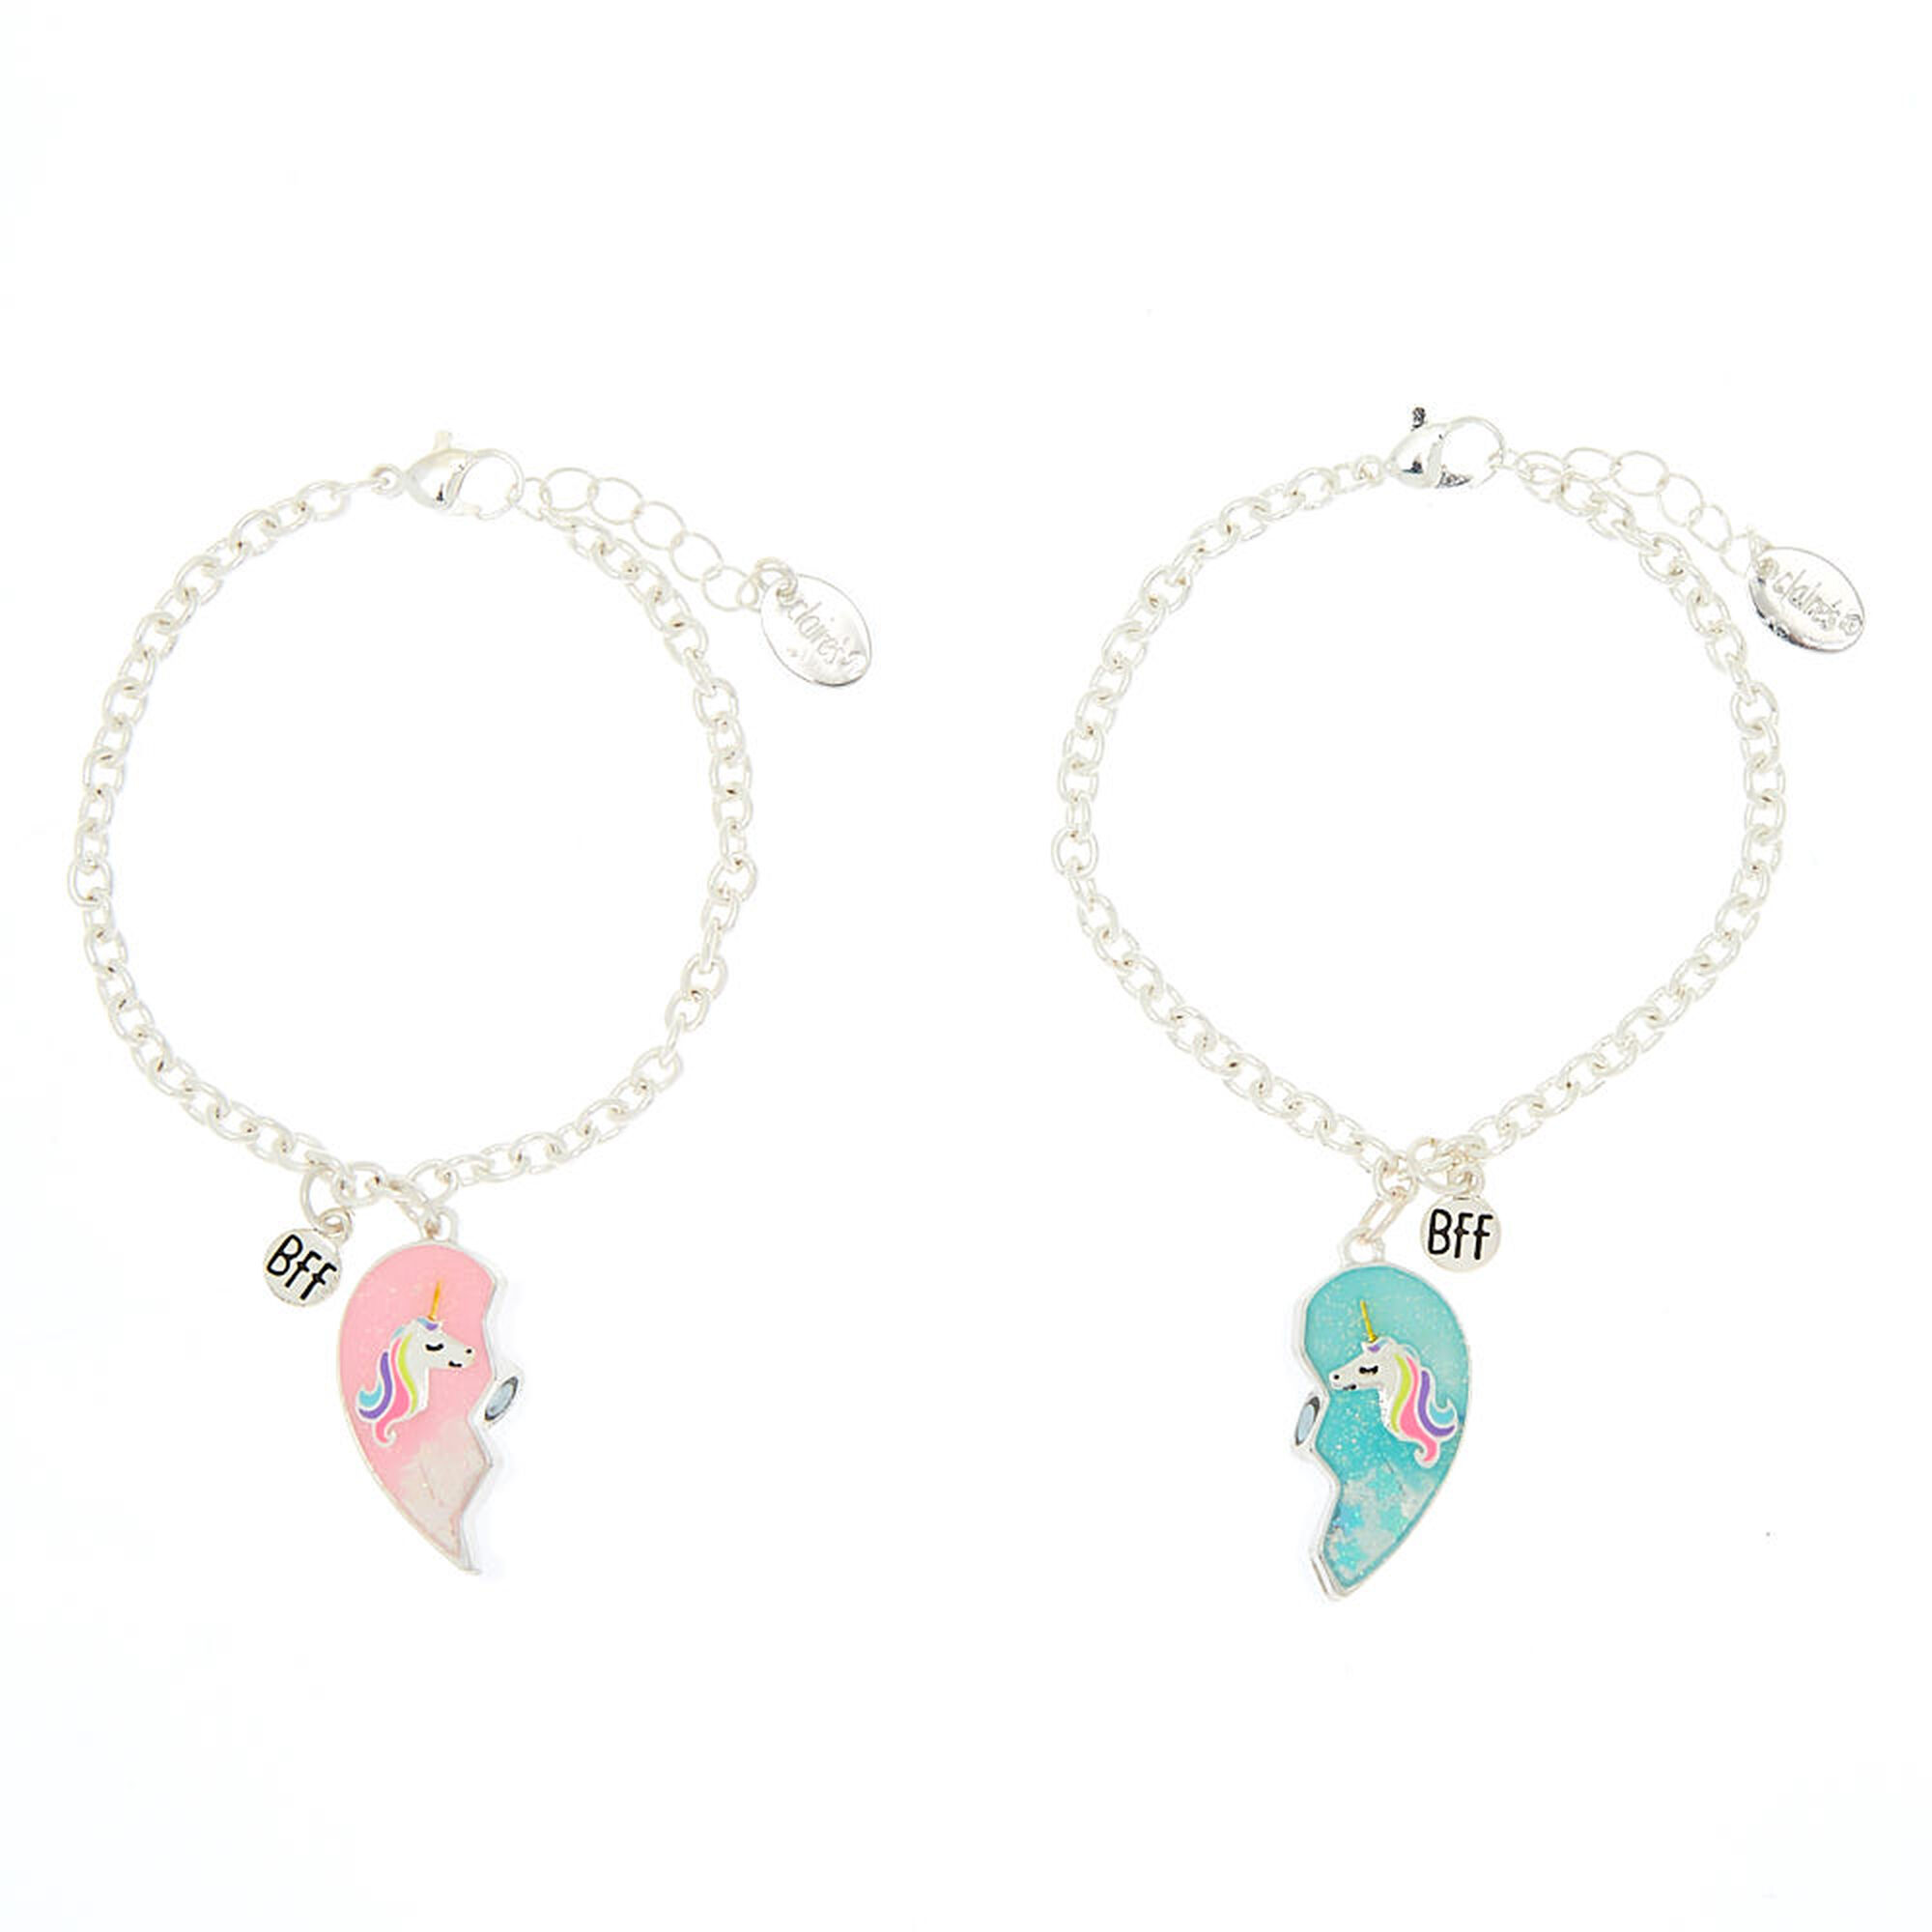 Best Friends Unicorn Heart Charm Bracelets 2 Pack